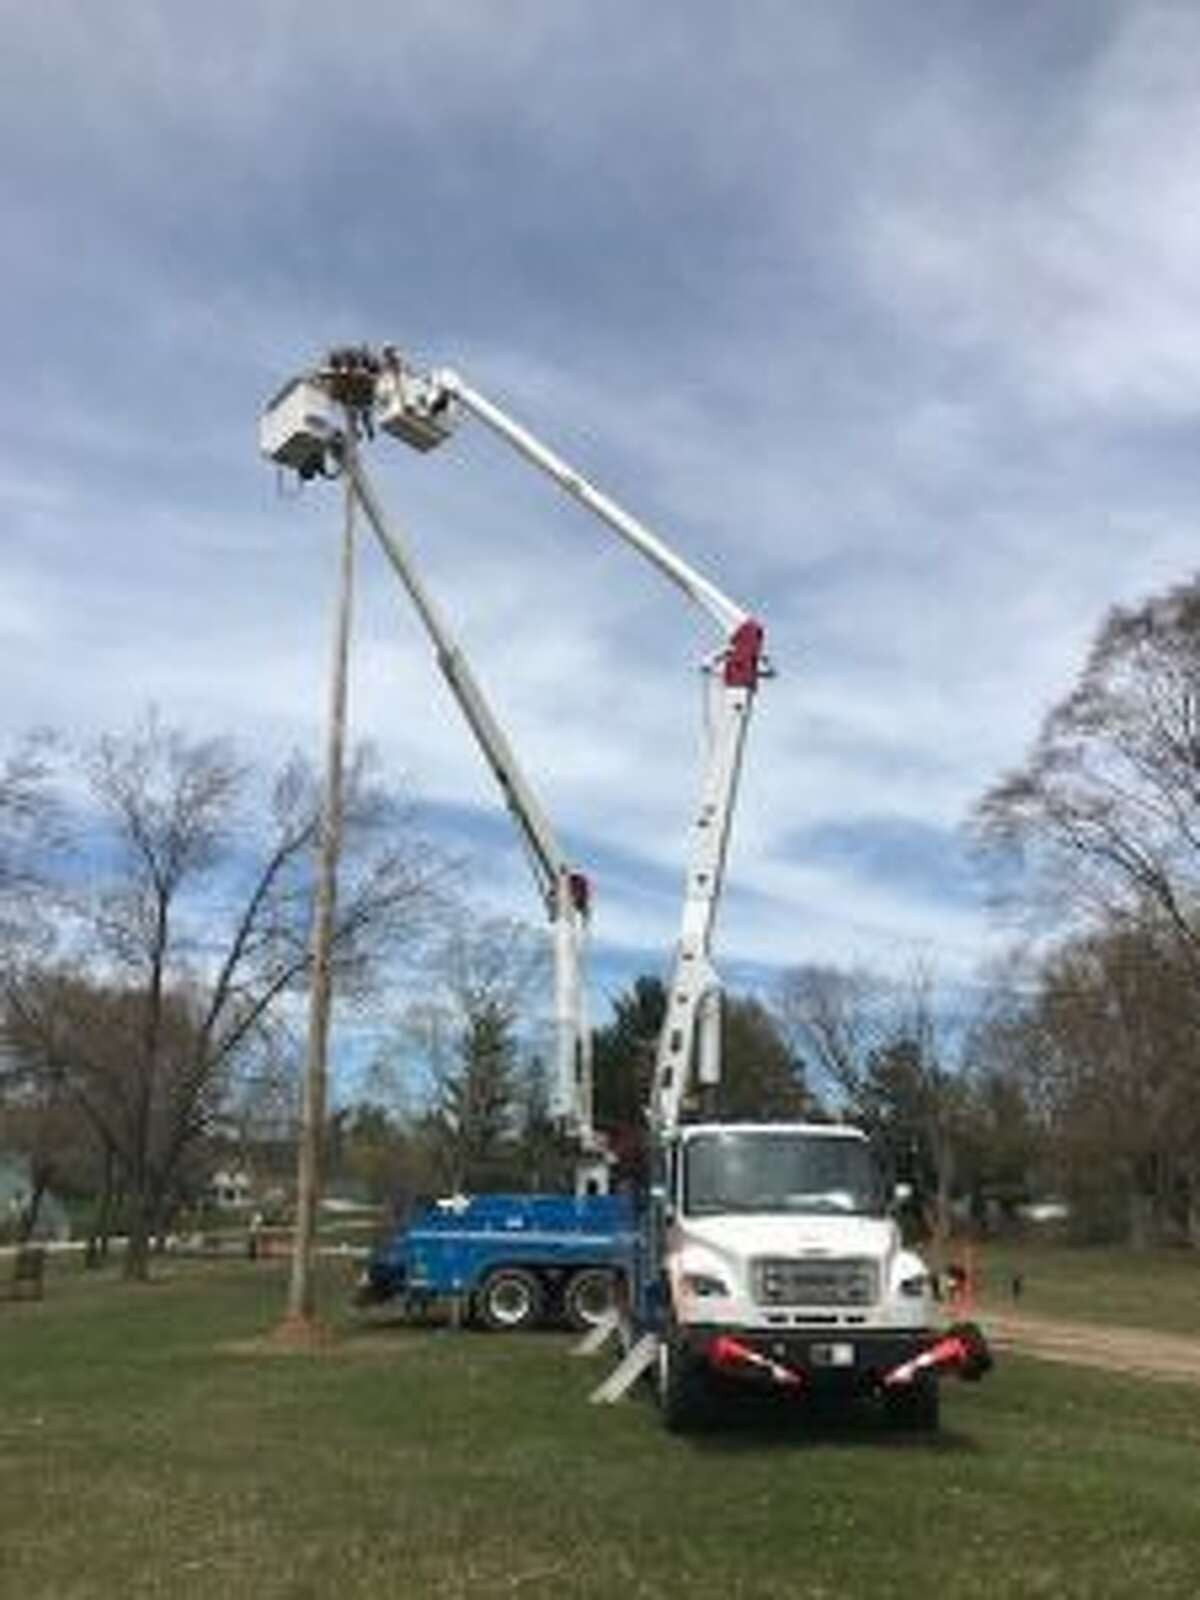 Consumers Energy helped the Mecosta County Parks Commission with moving the osprey nest to a safer place. The platform on the pole was constructed and donated by the local Cub Scout troop. (Courtesy photo)